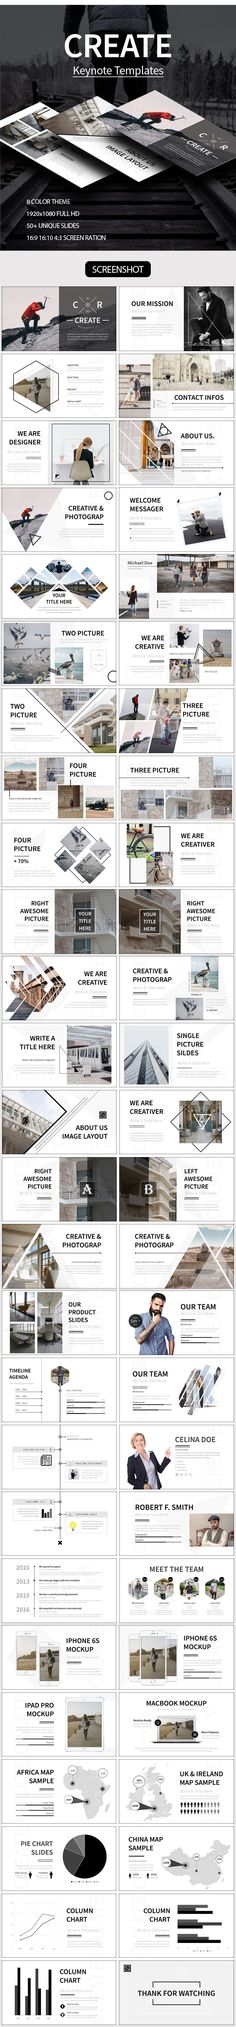 CREATE Keynote Template  #modern #biz • Download ➝… 심플, 사진,배치